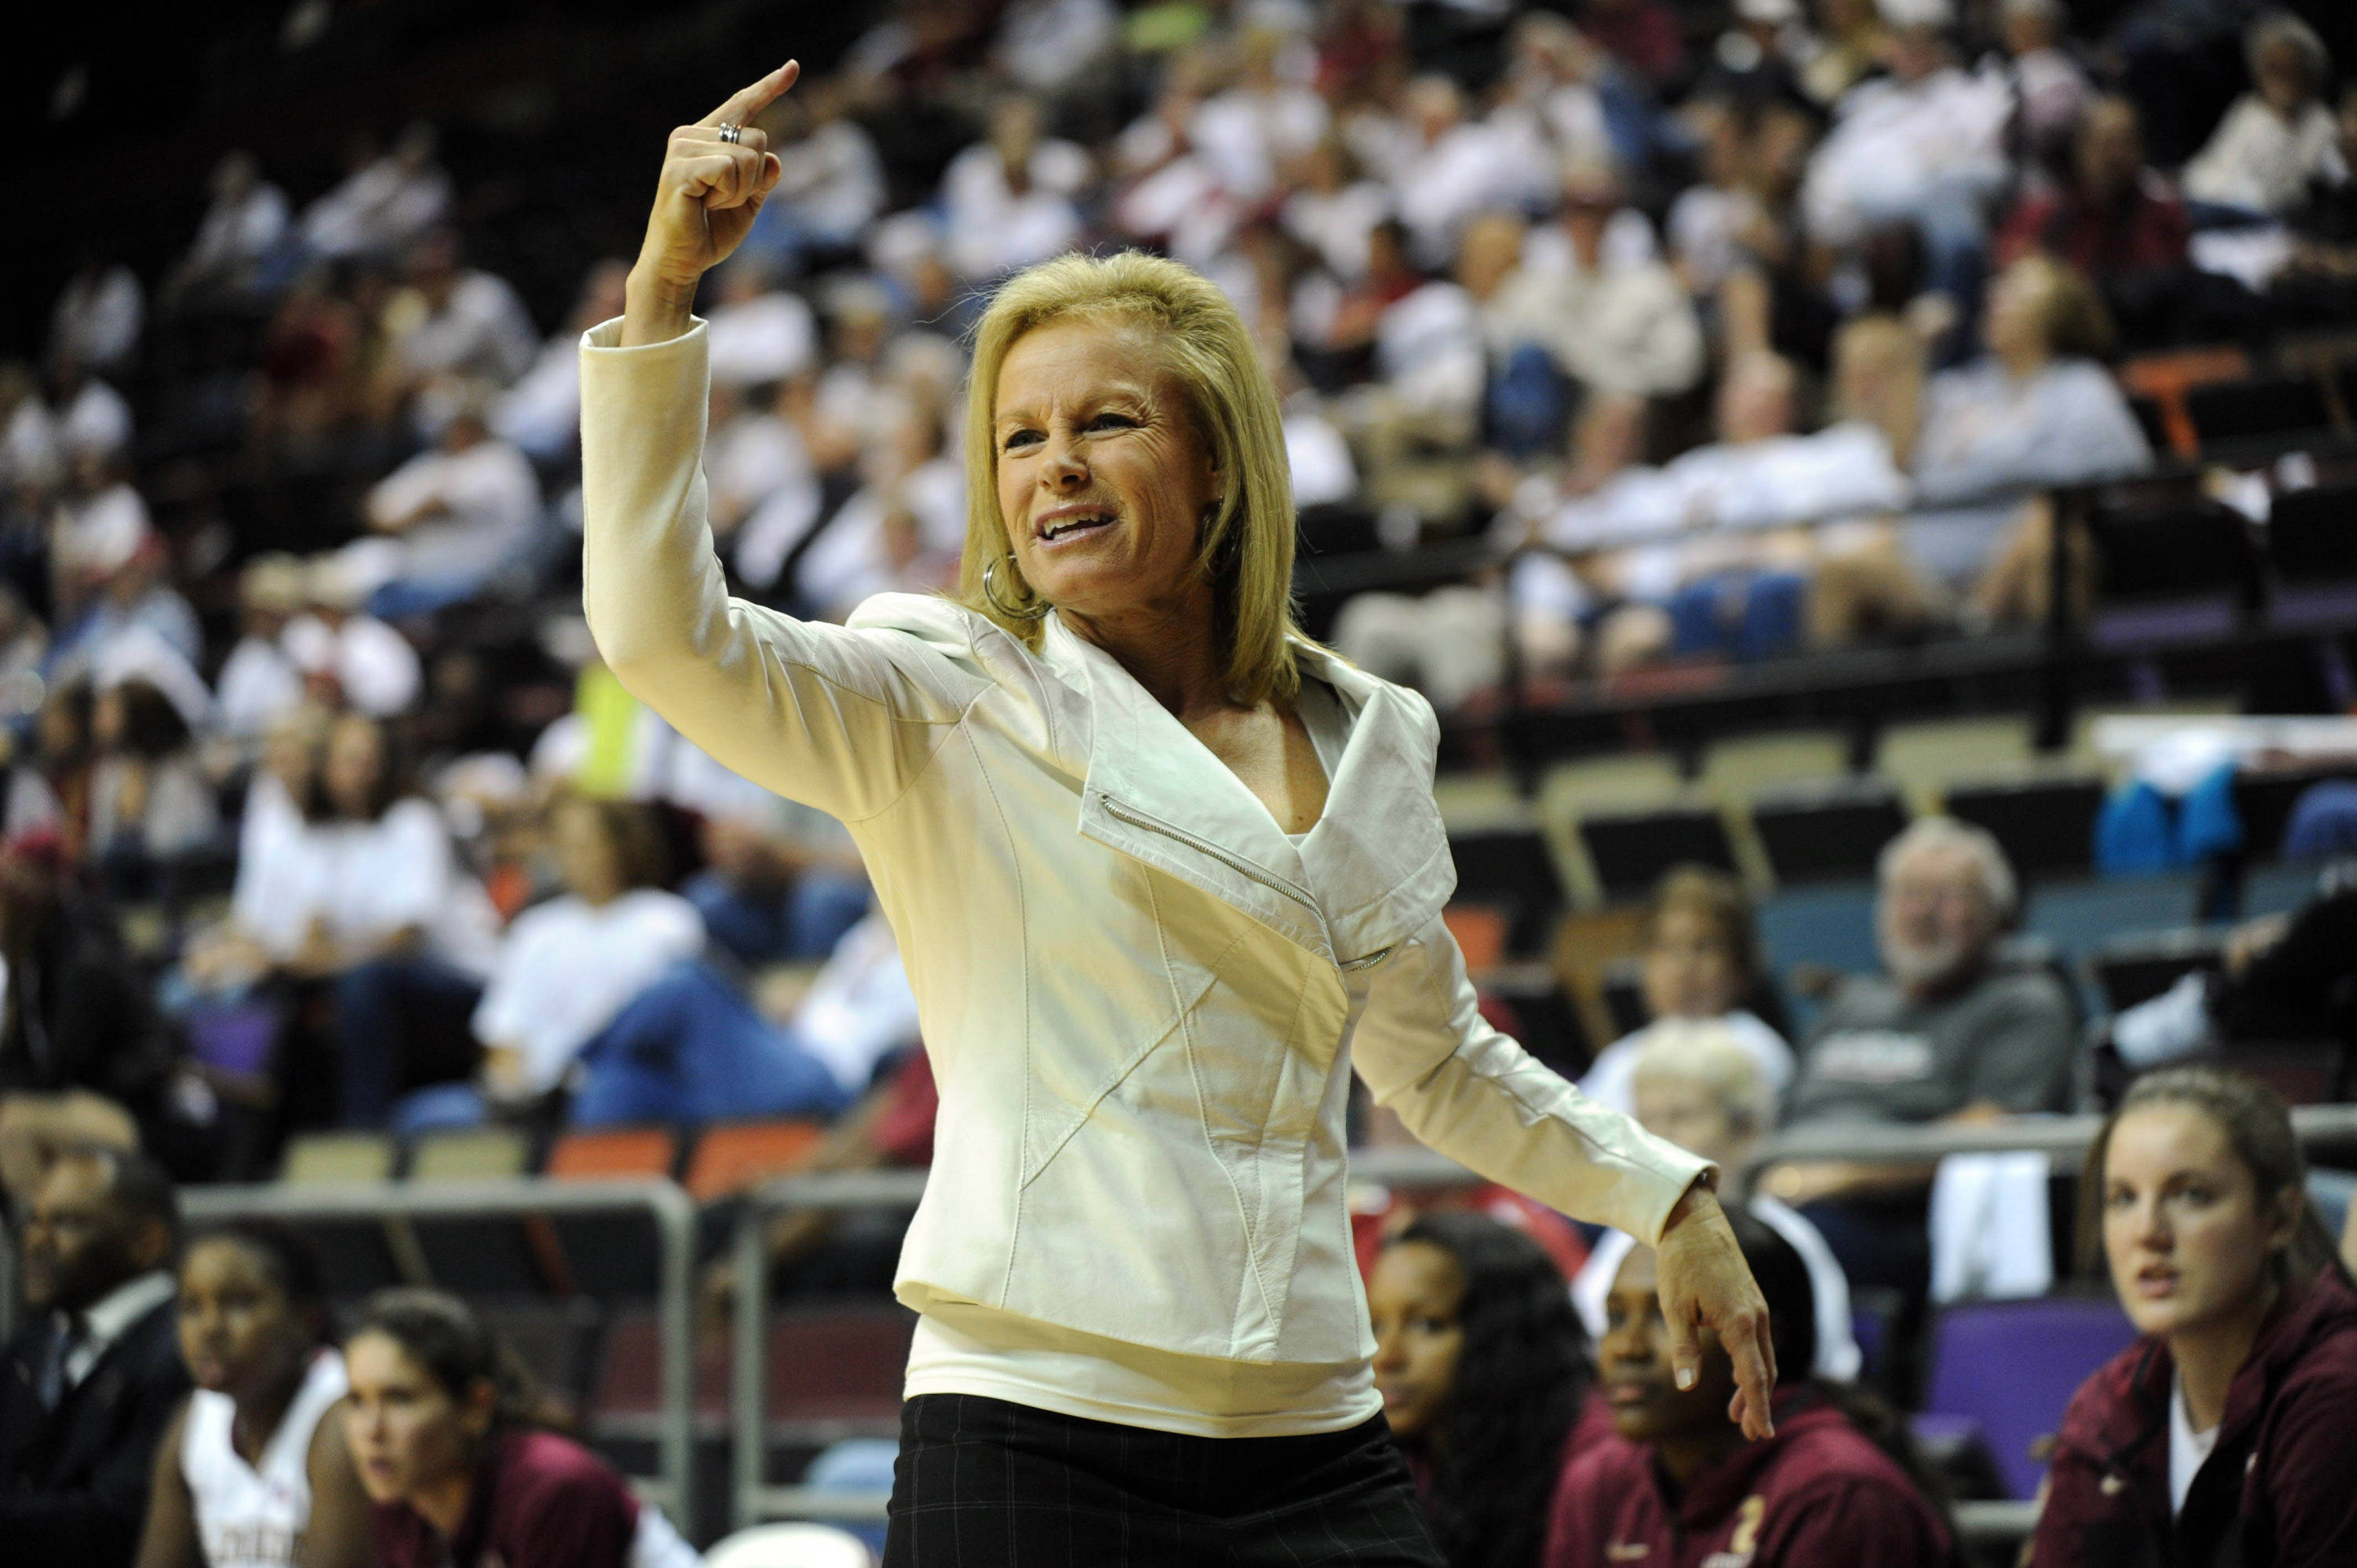 Dec 4, 2013; Tallahassee, FL, USA; Florida State Seminoles head coach Sue Semrau during the game against the Michigan State Spartans at the Donald L. Tucker Center (Tallahassee). Mandatory Credit: Melina Vastola-USA TODAY Sports